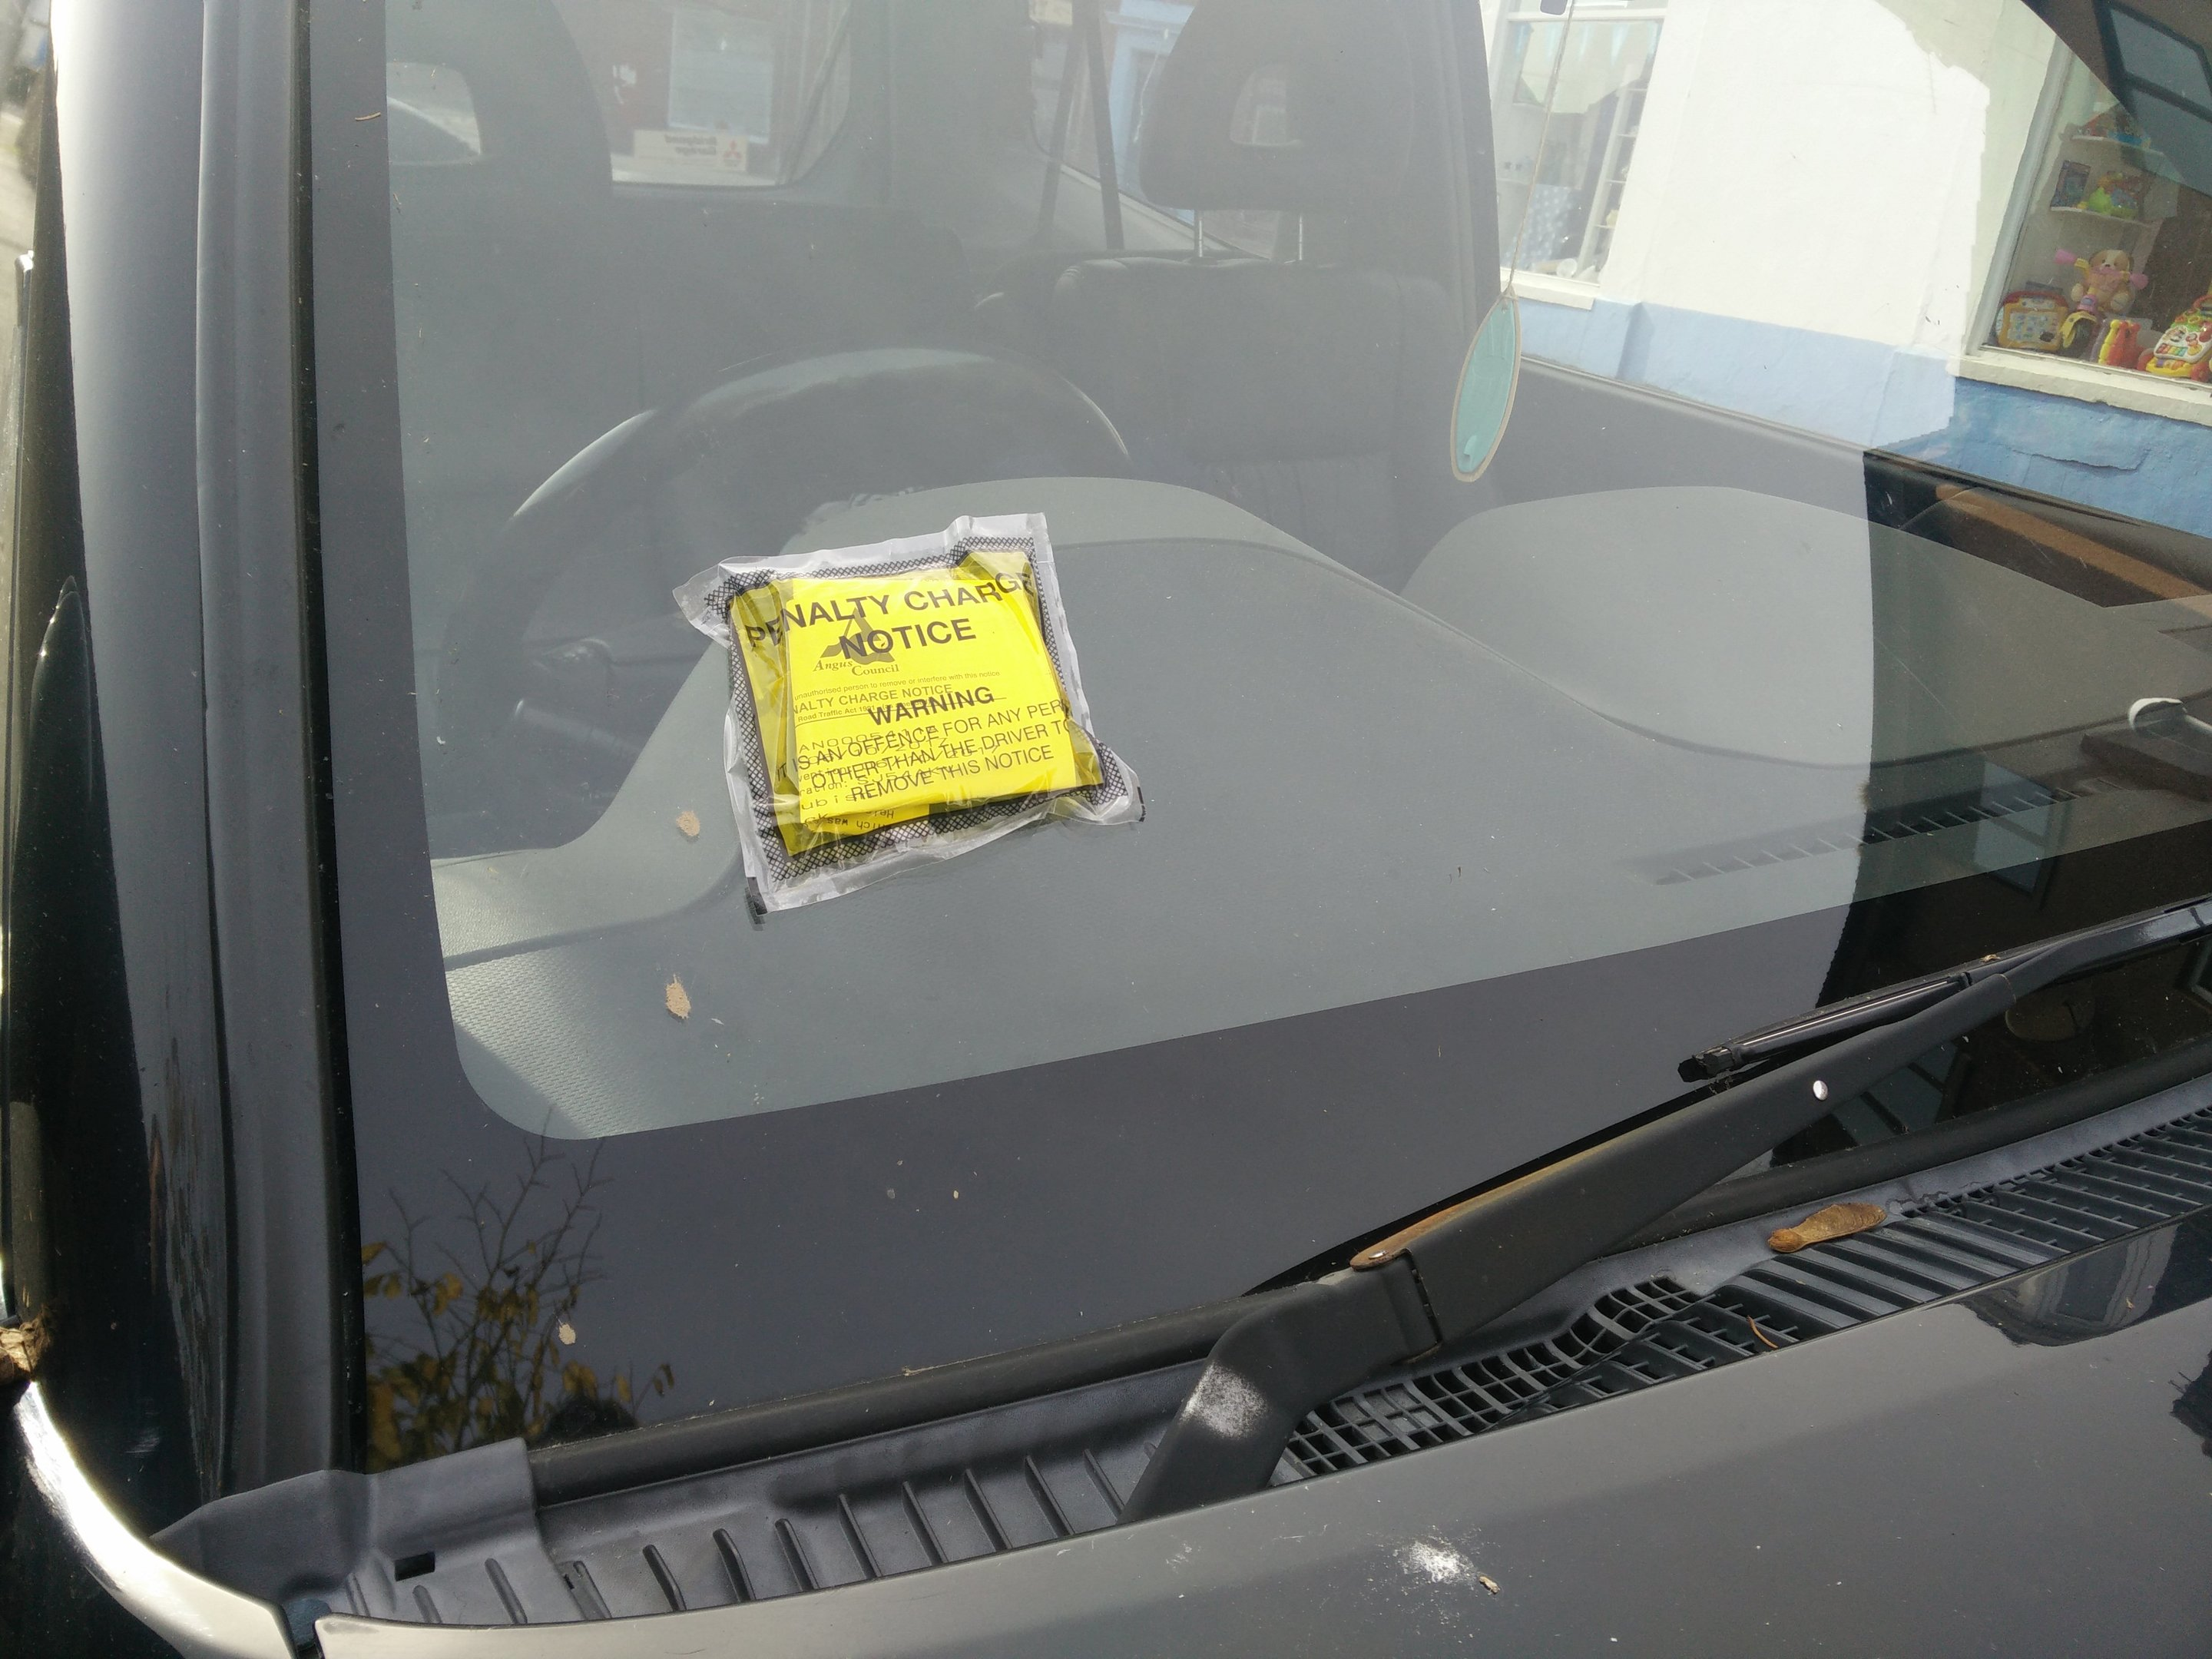 A vehicle in Arbroath which was hit with a fine at the weekend.